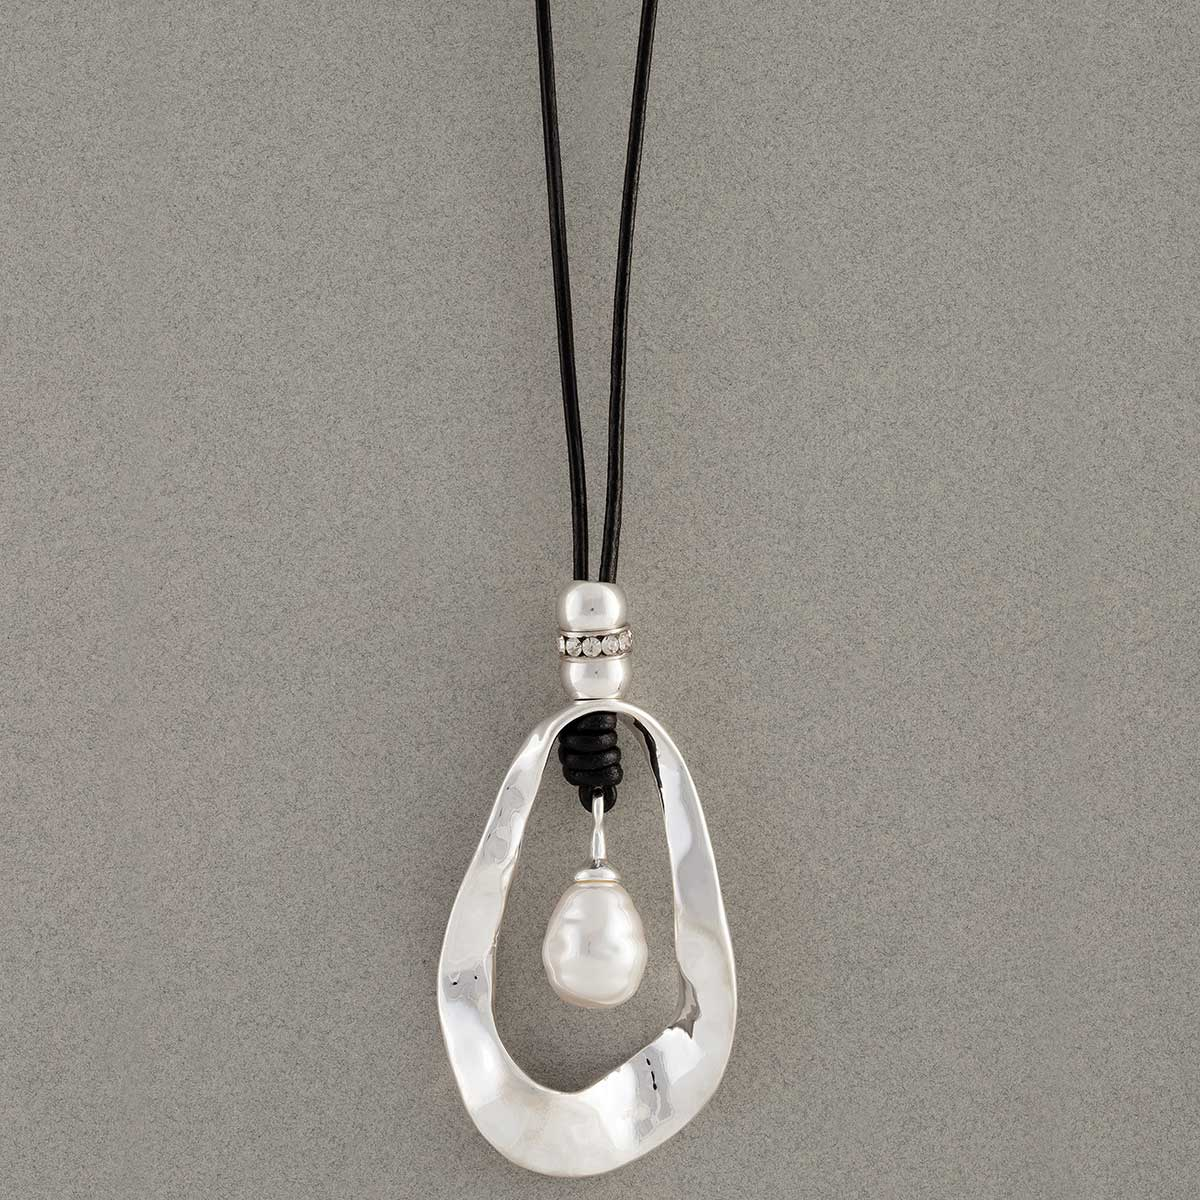 Hammered Silver Oval with Pearl Necklace on Black Cord